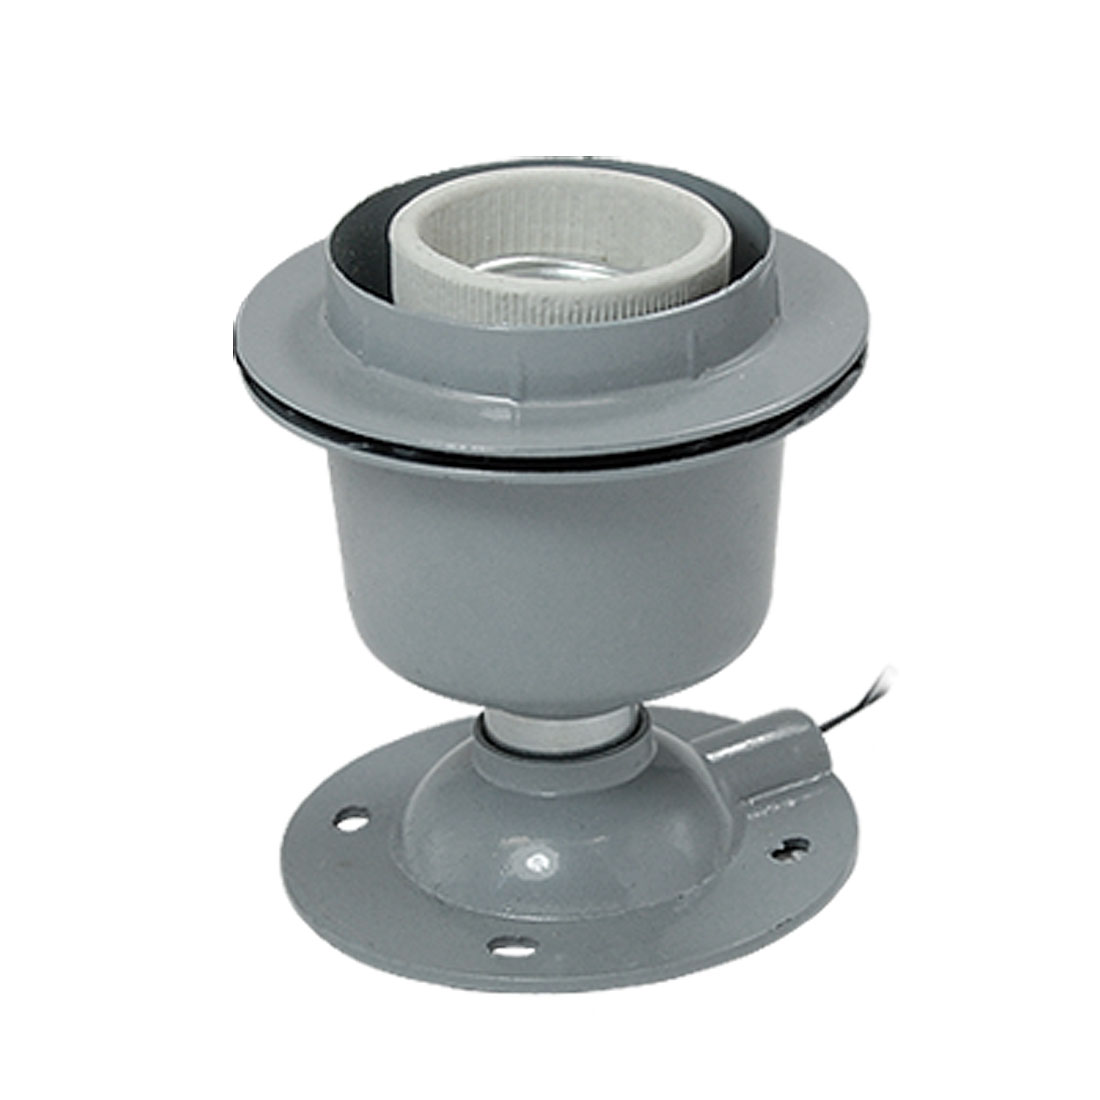 E27 Round Metal Light Bulb Lamp Socket Holder